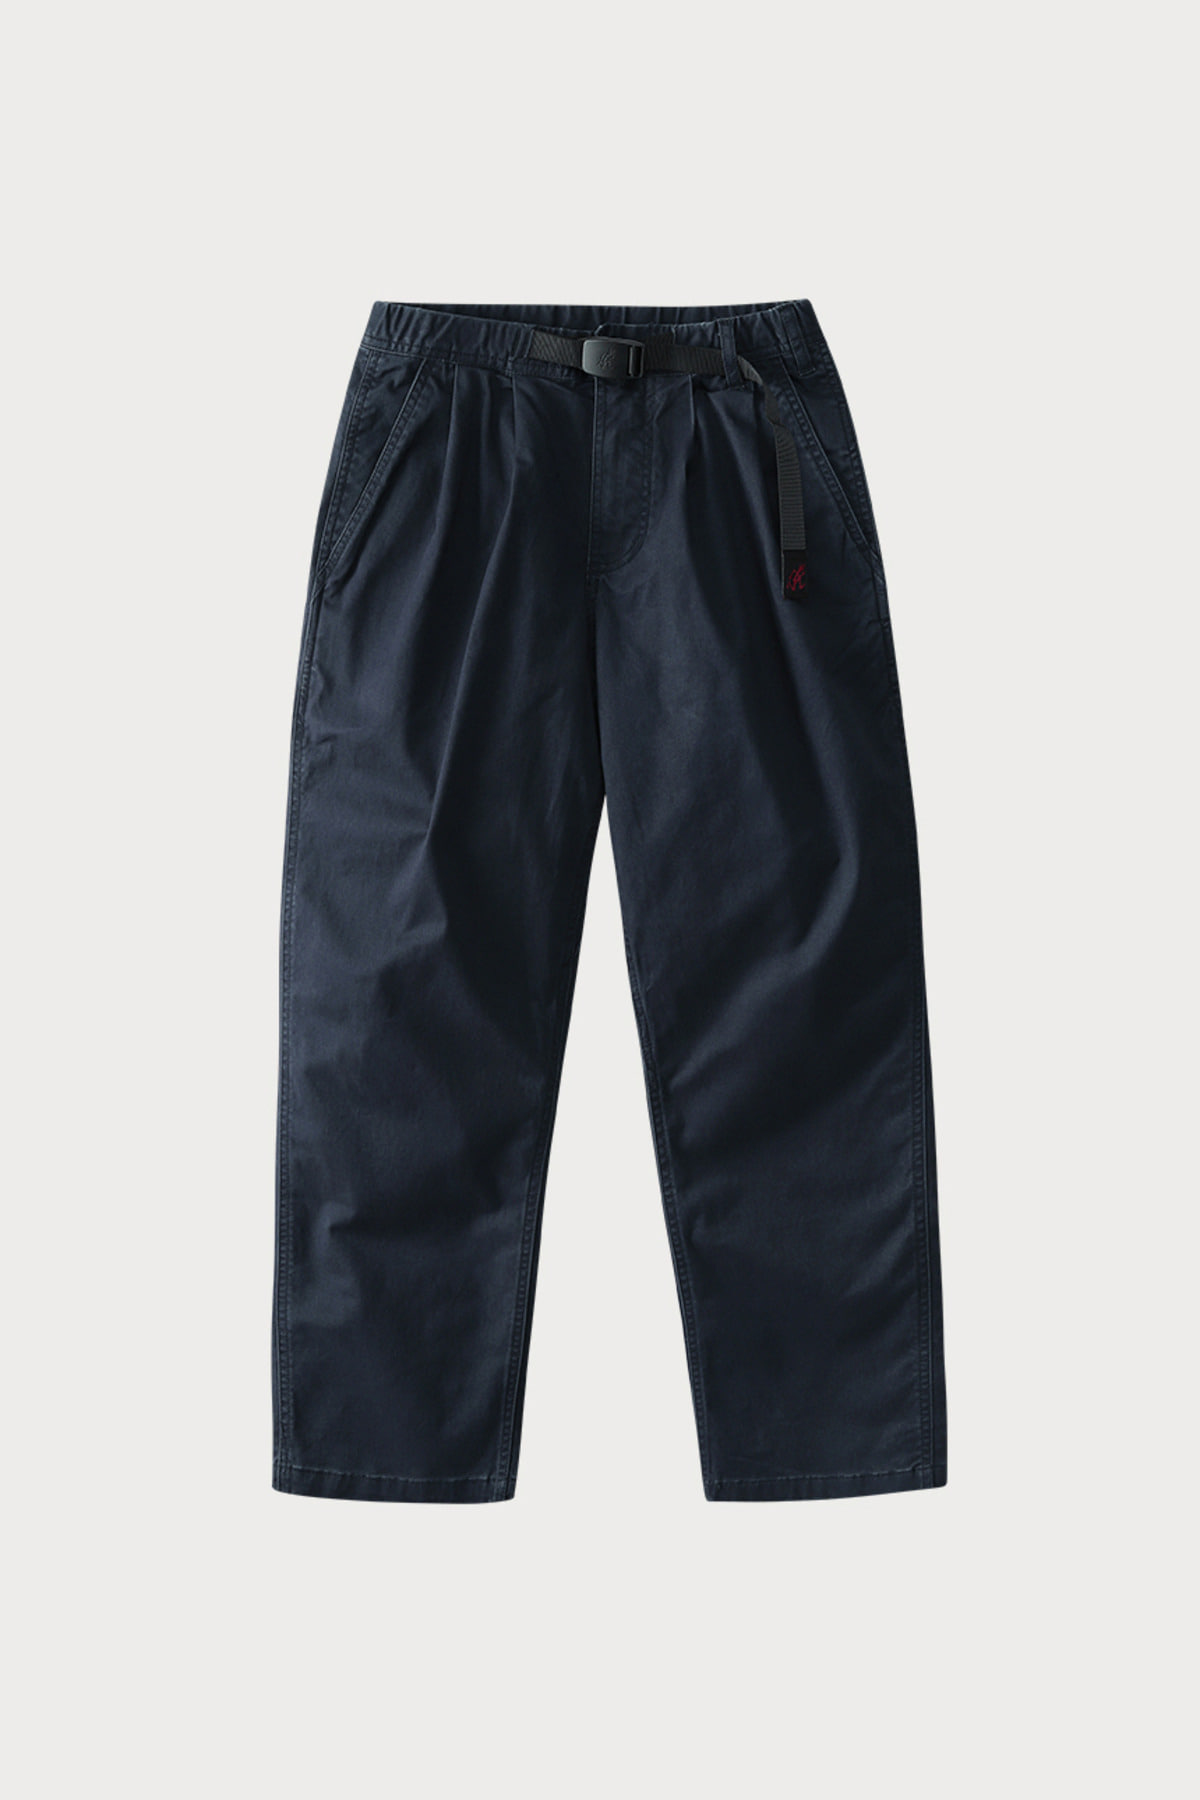 GURKHA PANTS DOUBLE NAVY